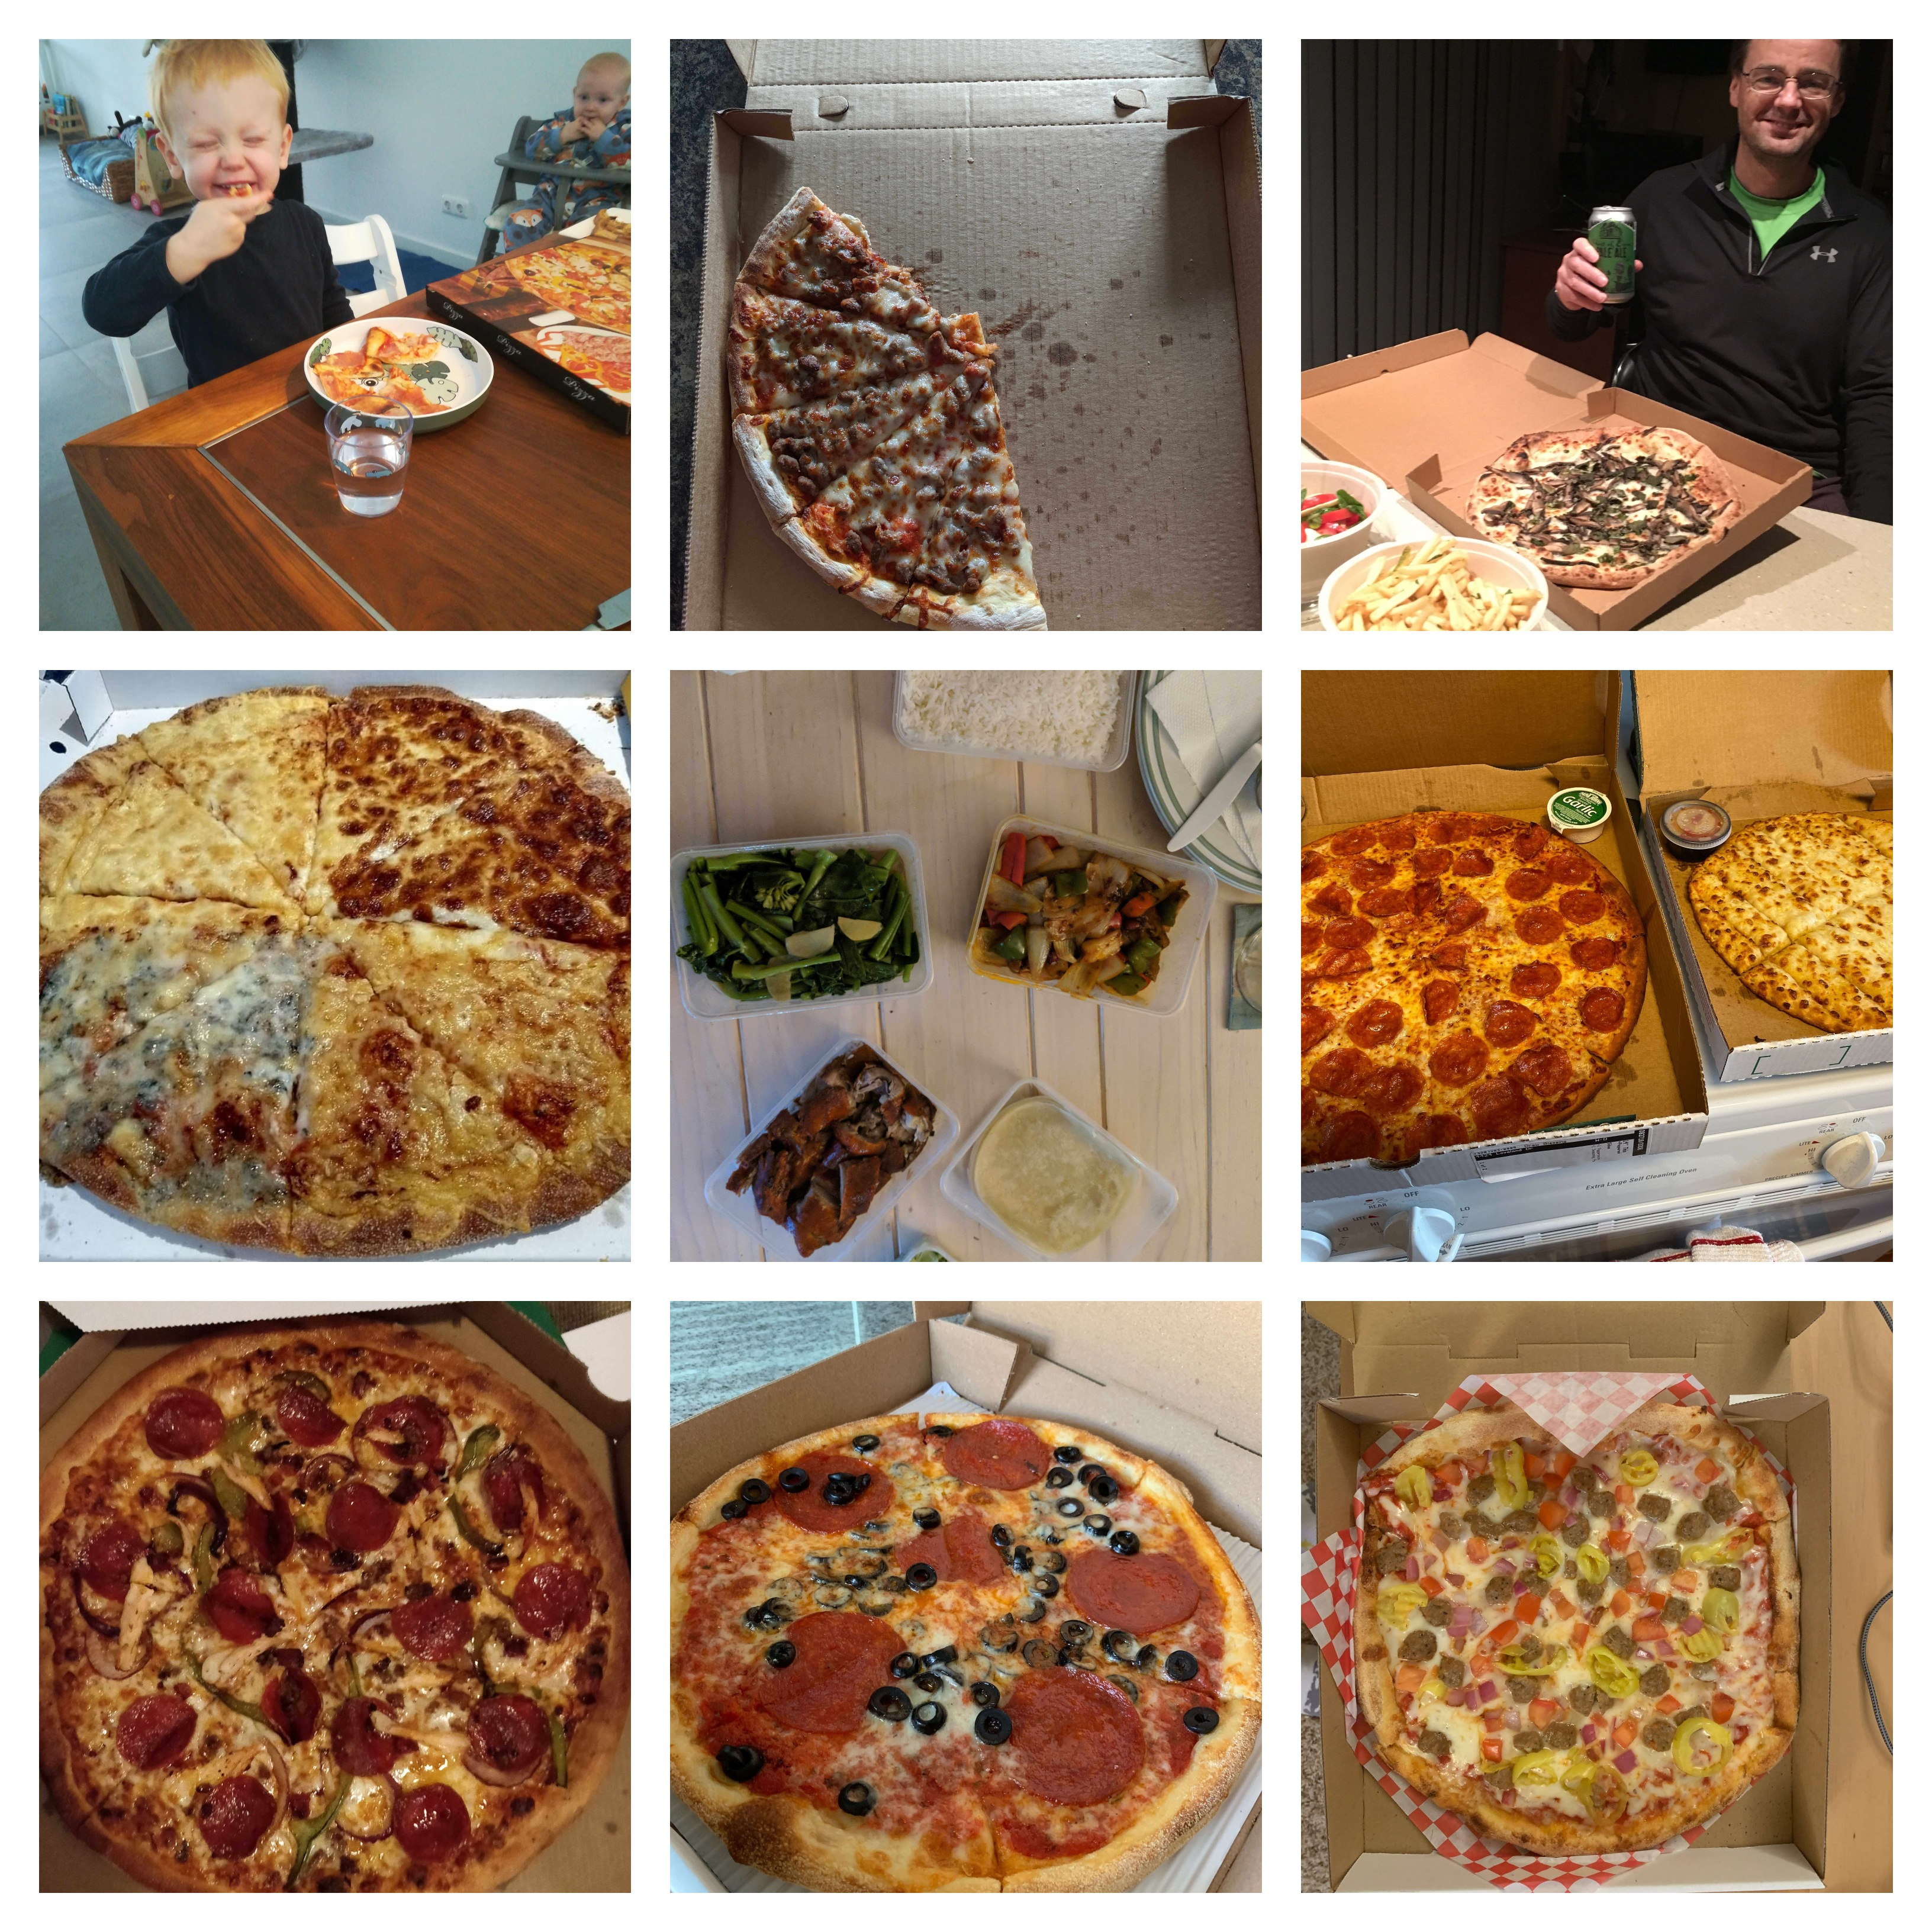 Support Pizza Party 2019-09-27 Collage 2